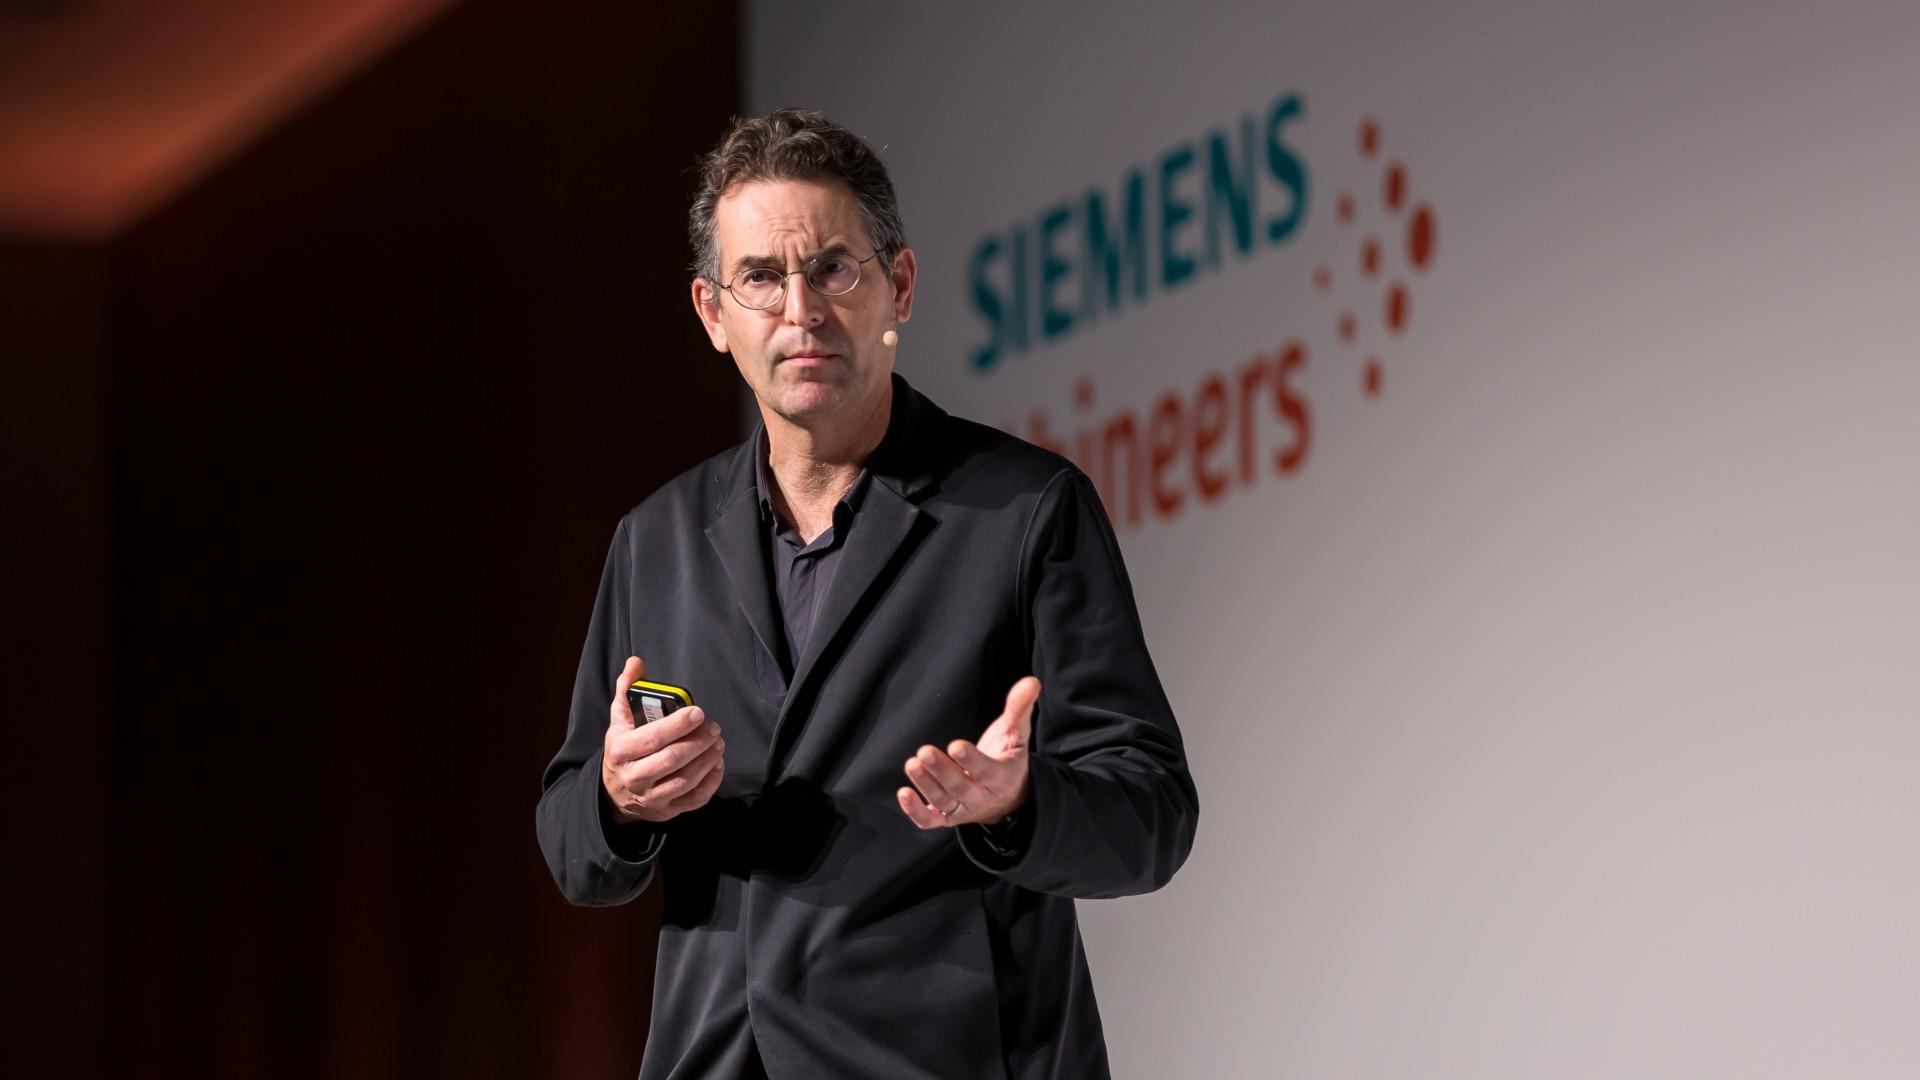 John Halamka explains the influence of a data-driven approach in precision medicine.